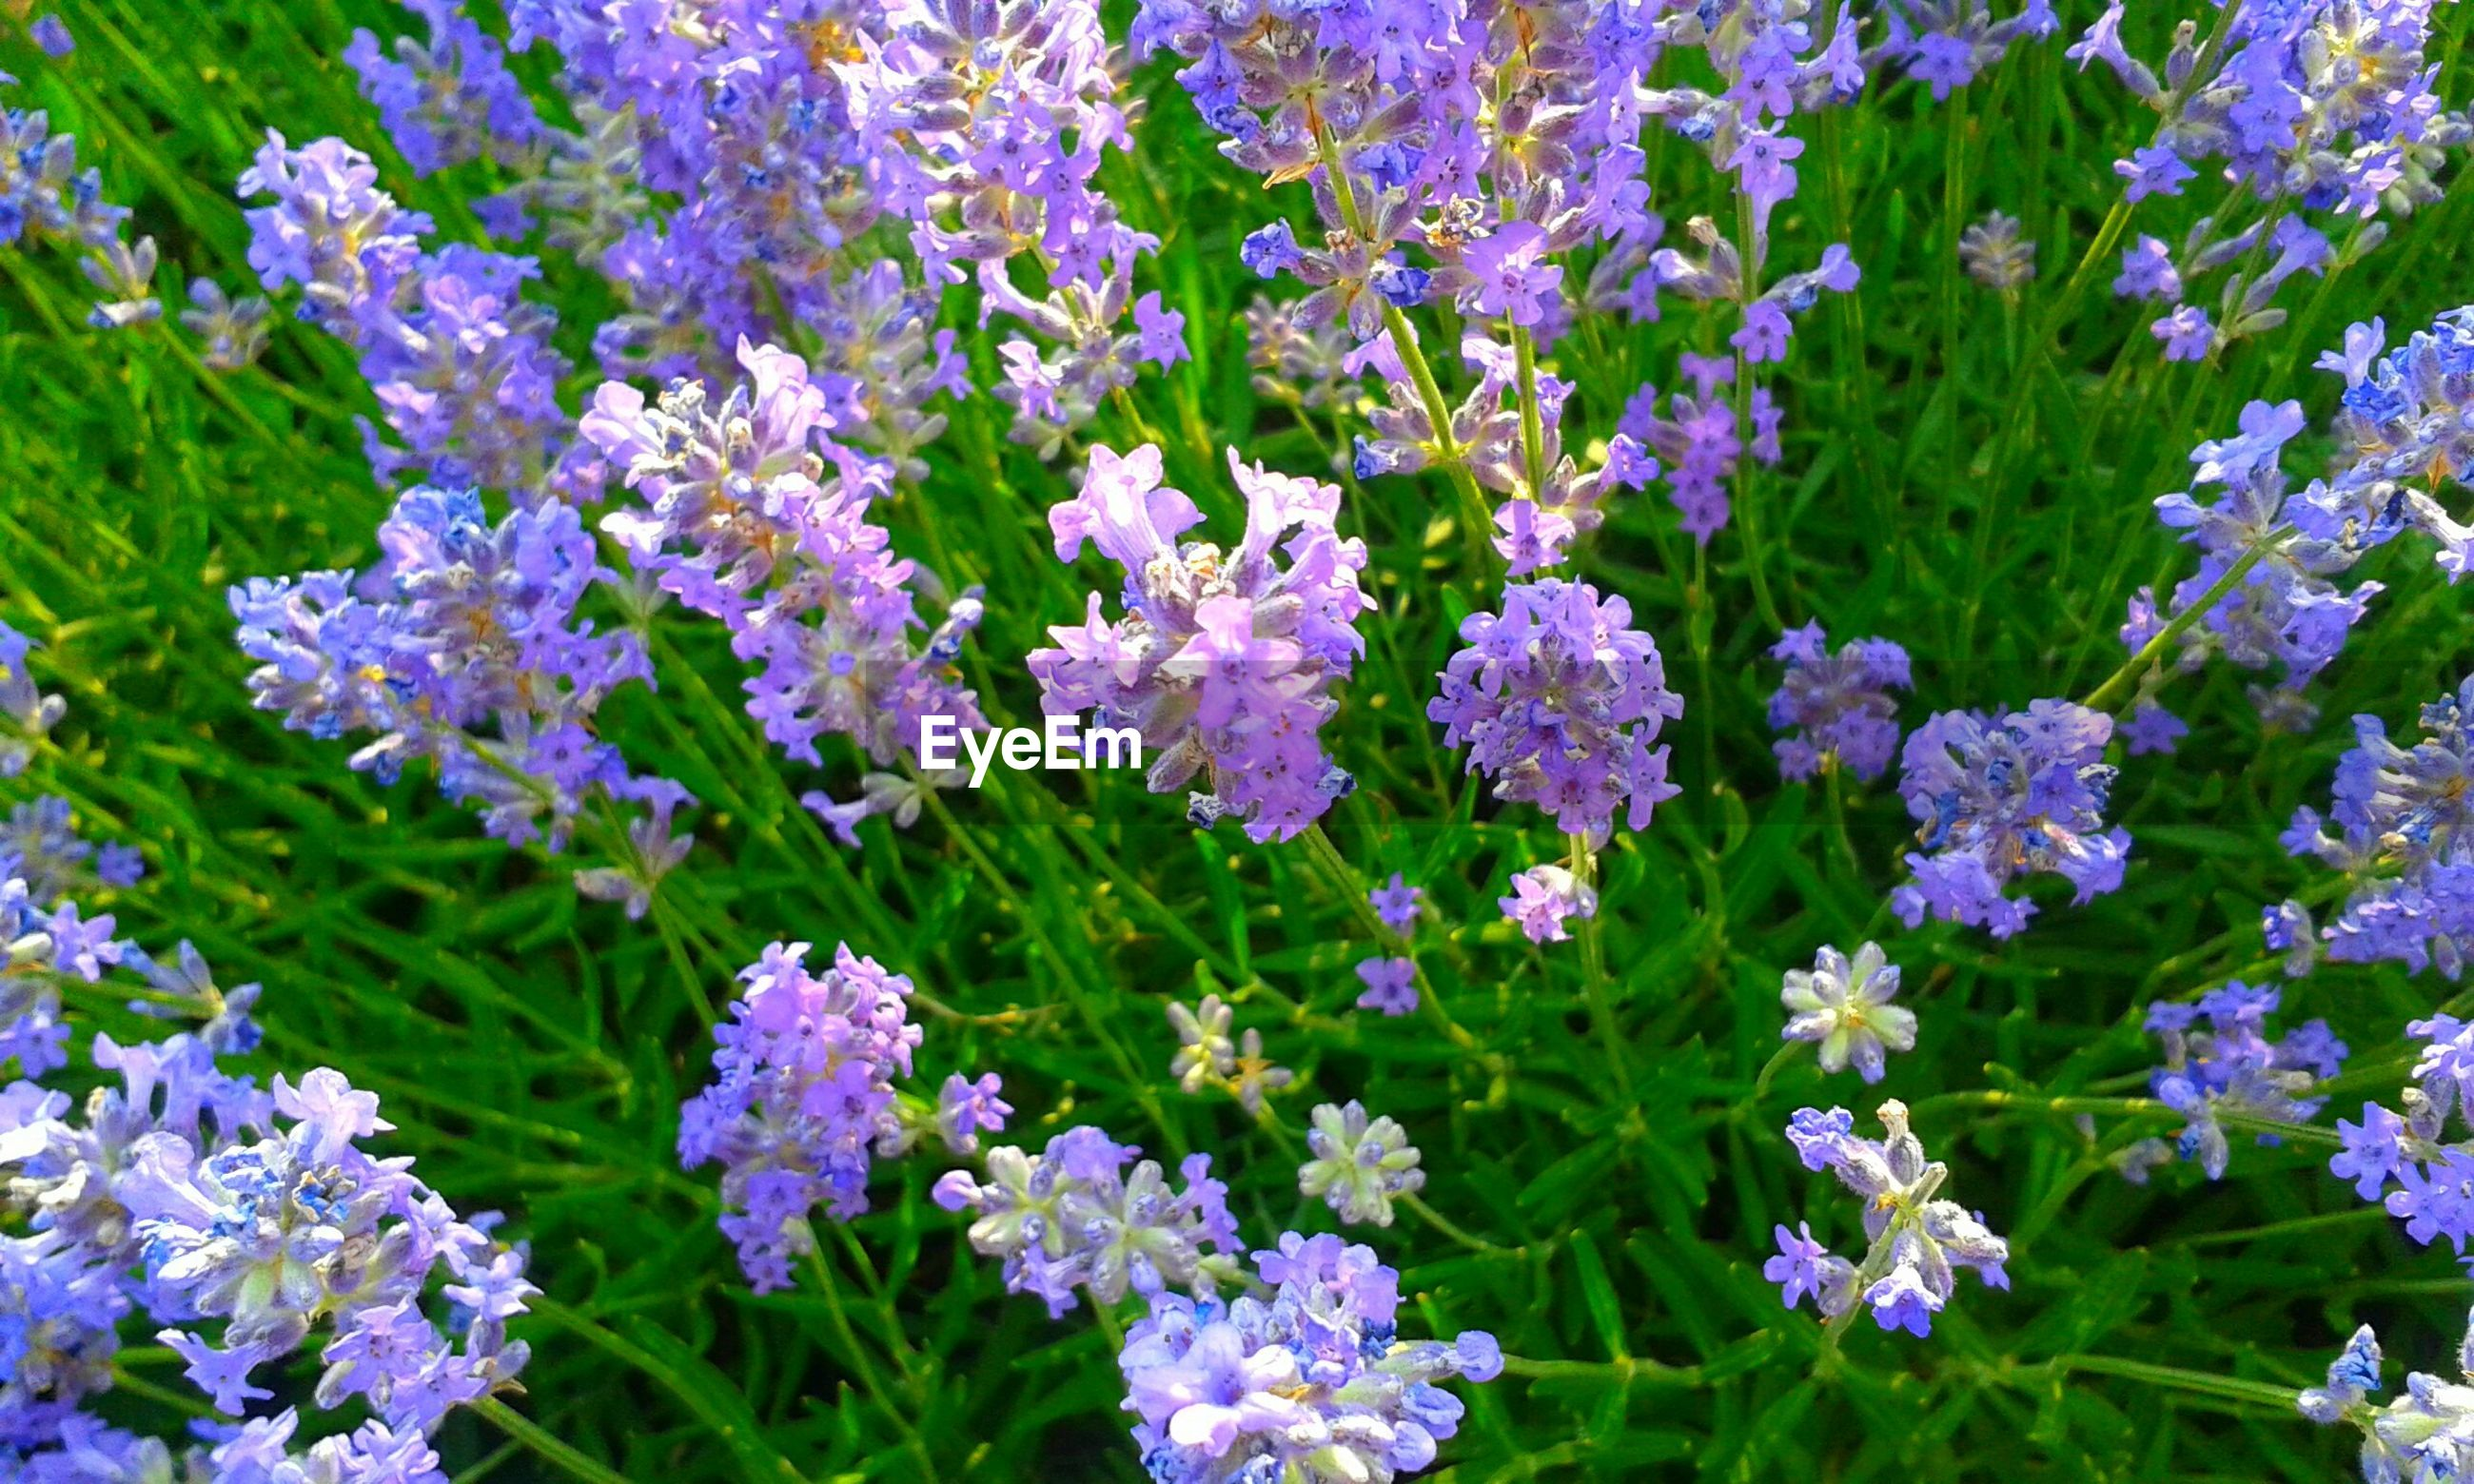 flower, plant, growth, nature, green color, beauty in nature, purple, fragility, full frame, no people, day, blooming, backgrounds, outdoors, freshness, flower head, close-up